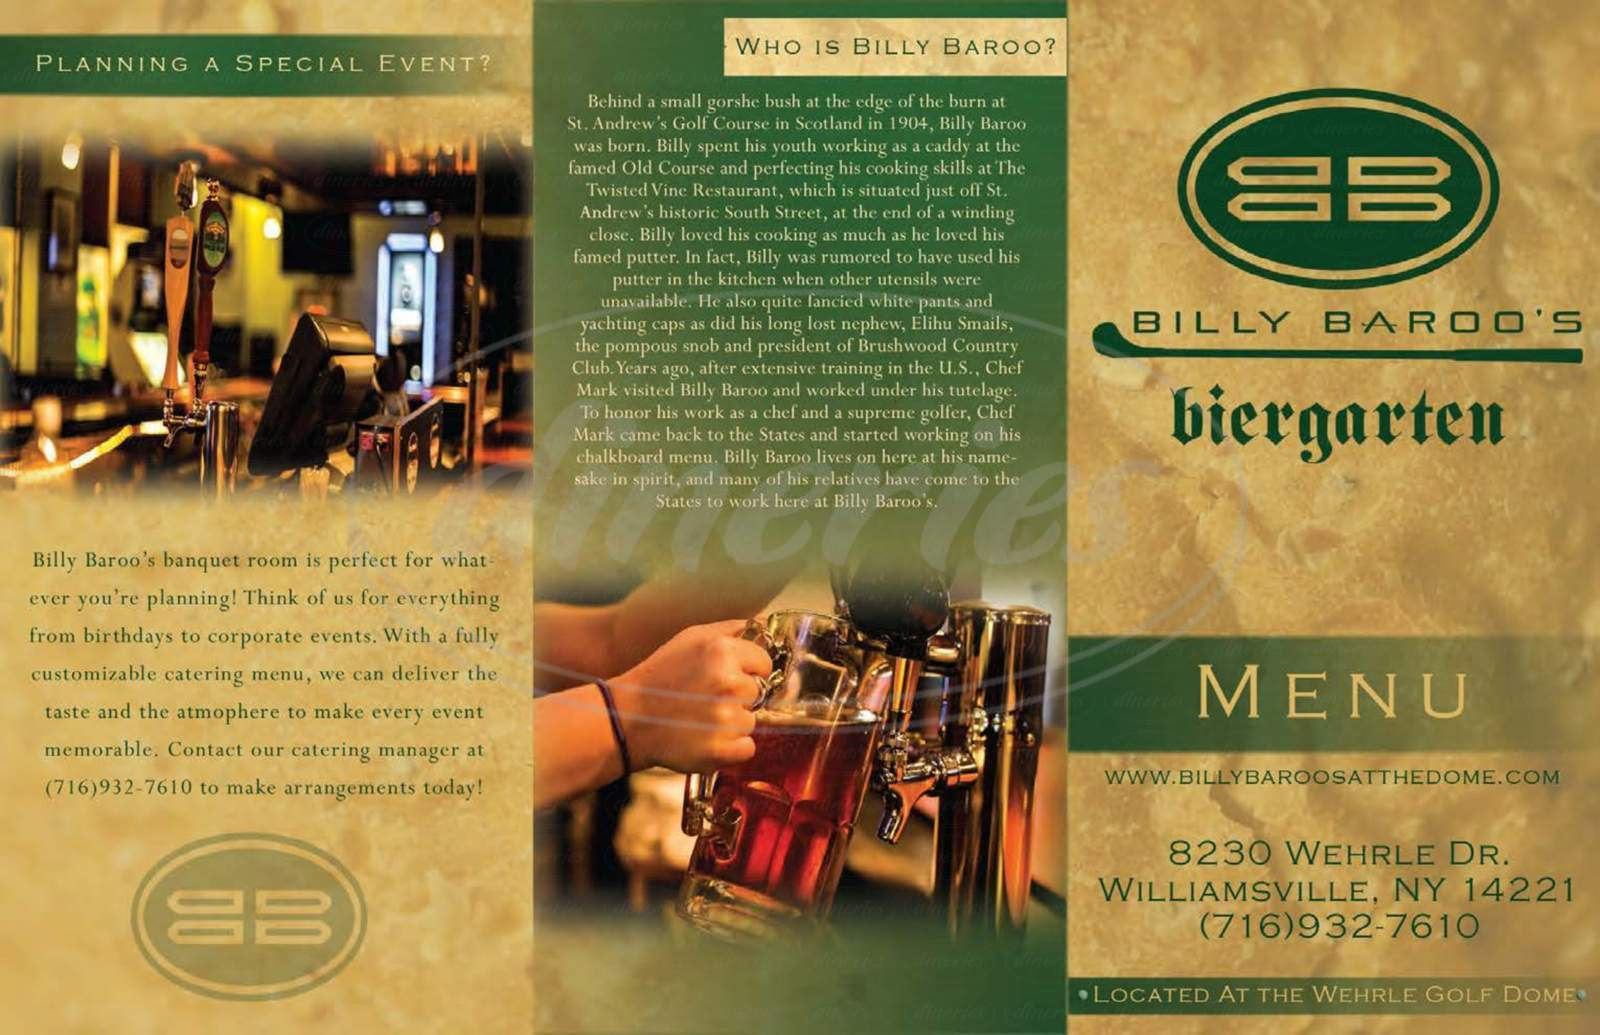 menu for Billy Baroo's Biergarten